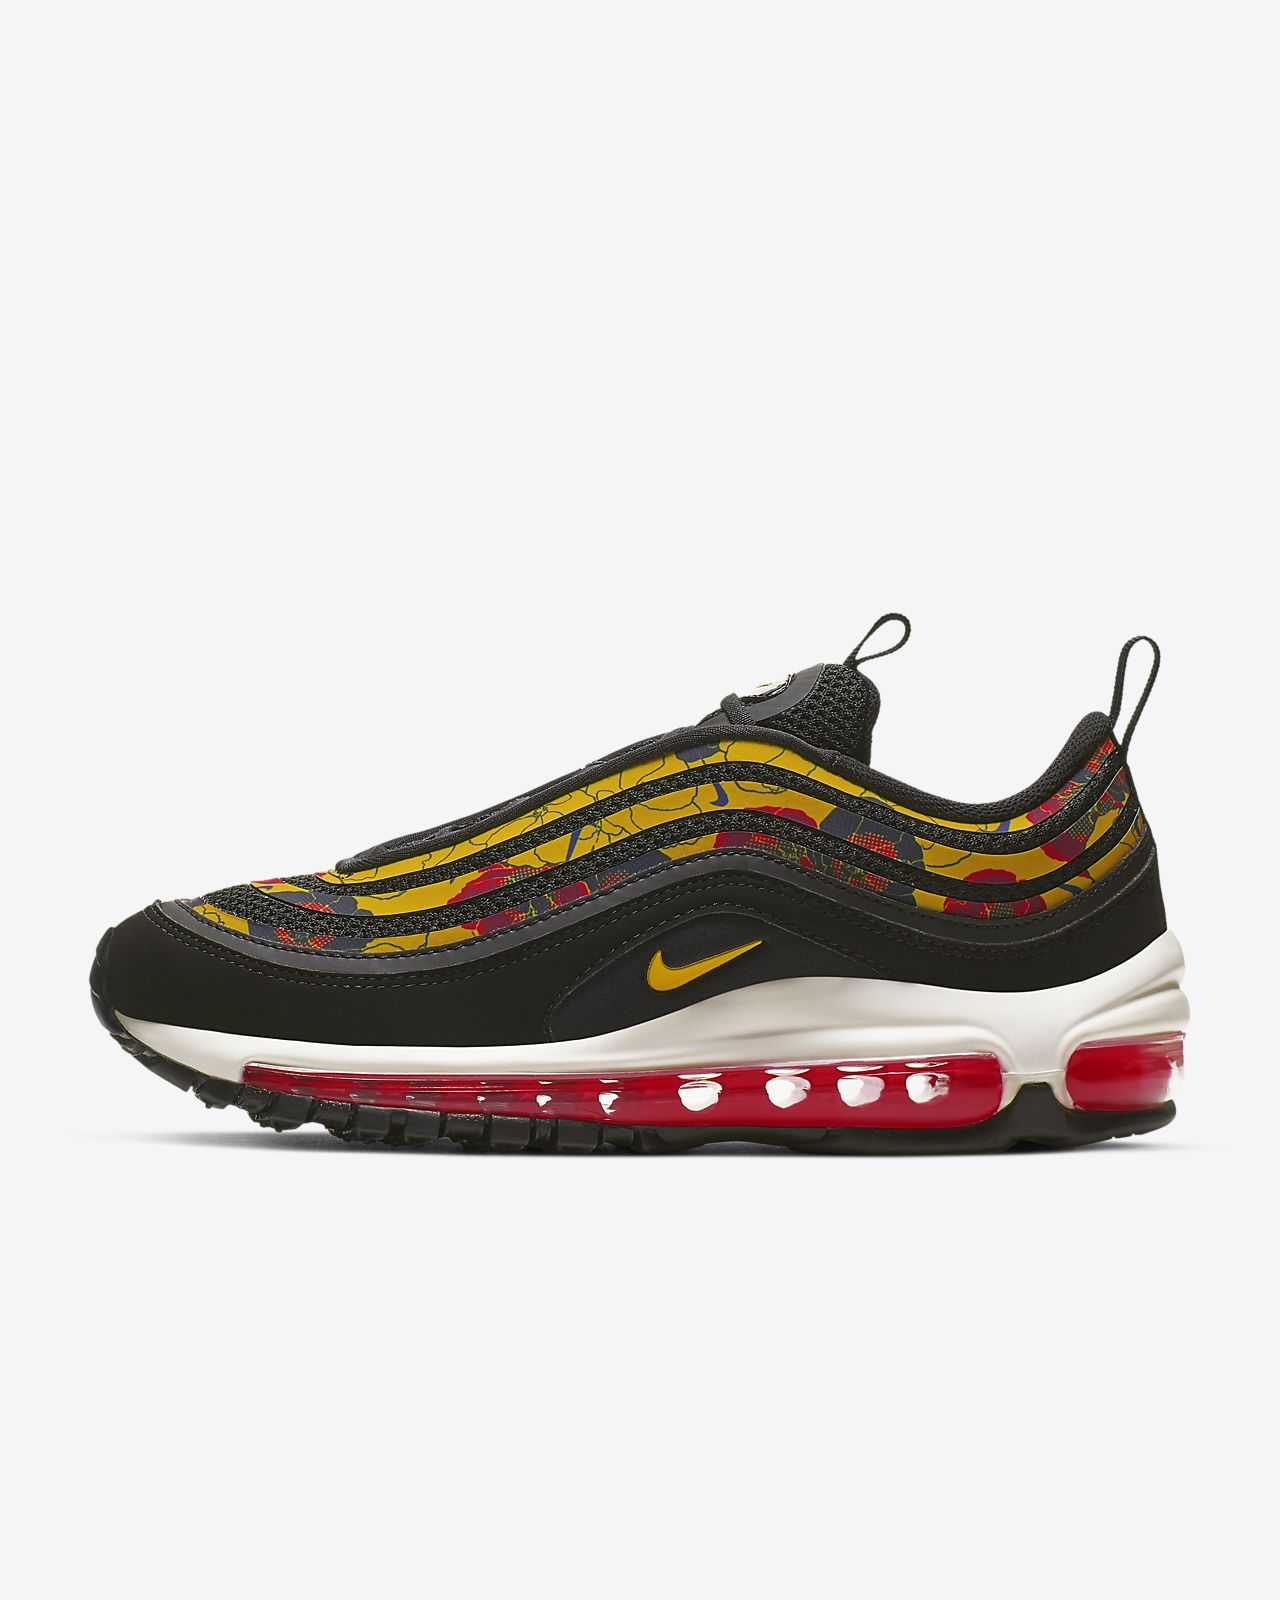 competitive price 678a5 6f298 Nike Air Max 97 SE Floral Women's Shoe. Nike.com